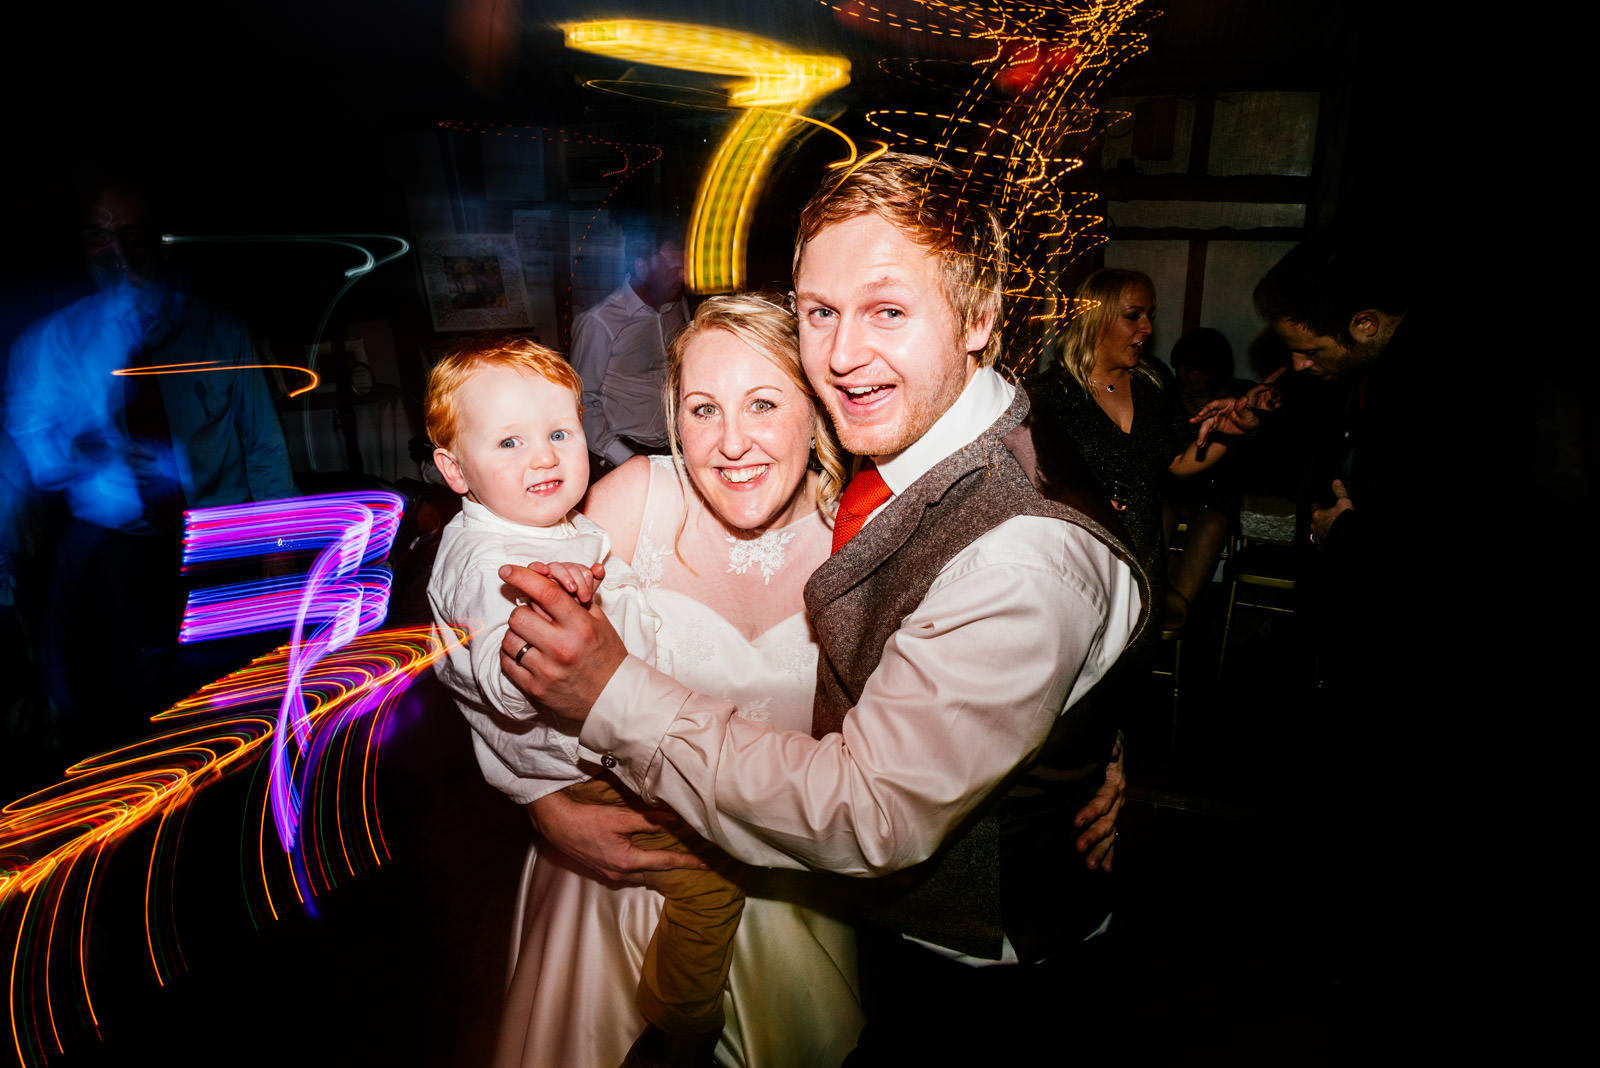 Bride, Groom and Son on wedding day